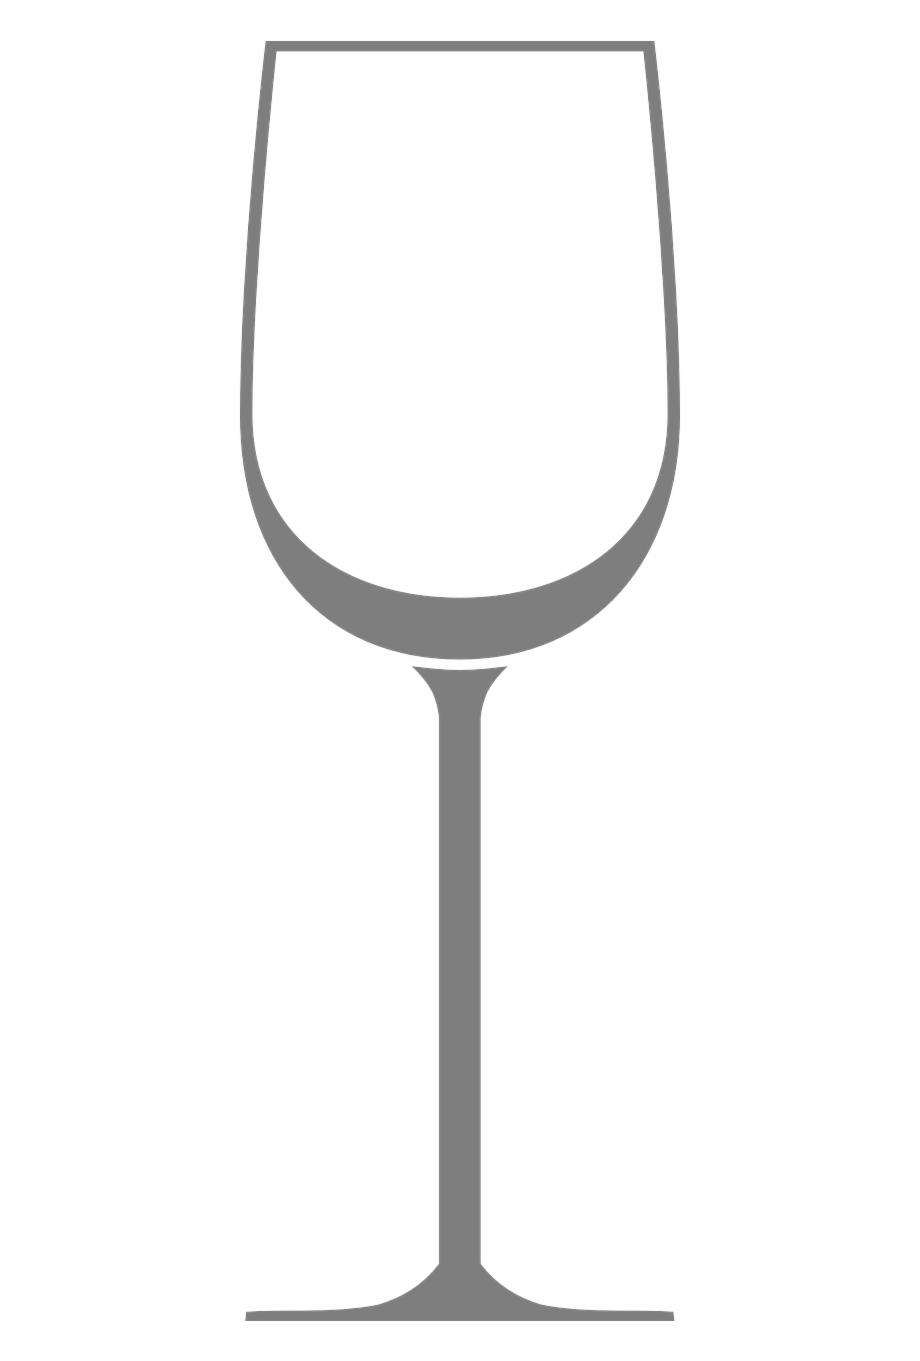 Fish in the shape of a wine glass clipart png stock Free Wine Glass Silhouette Png, Download Free Clip Art, Free Clip ... png stock